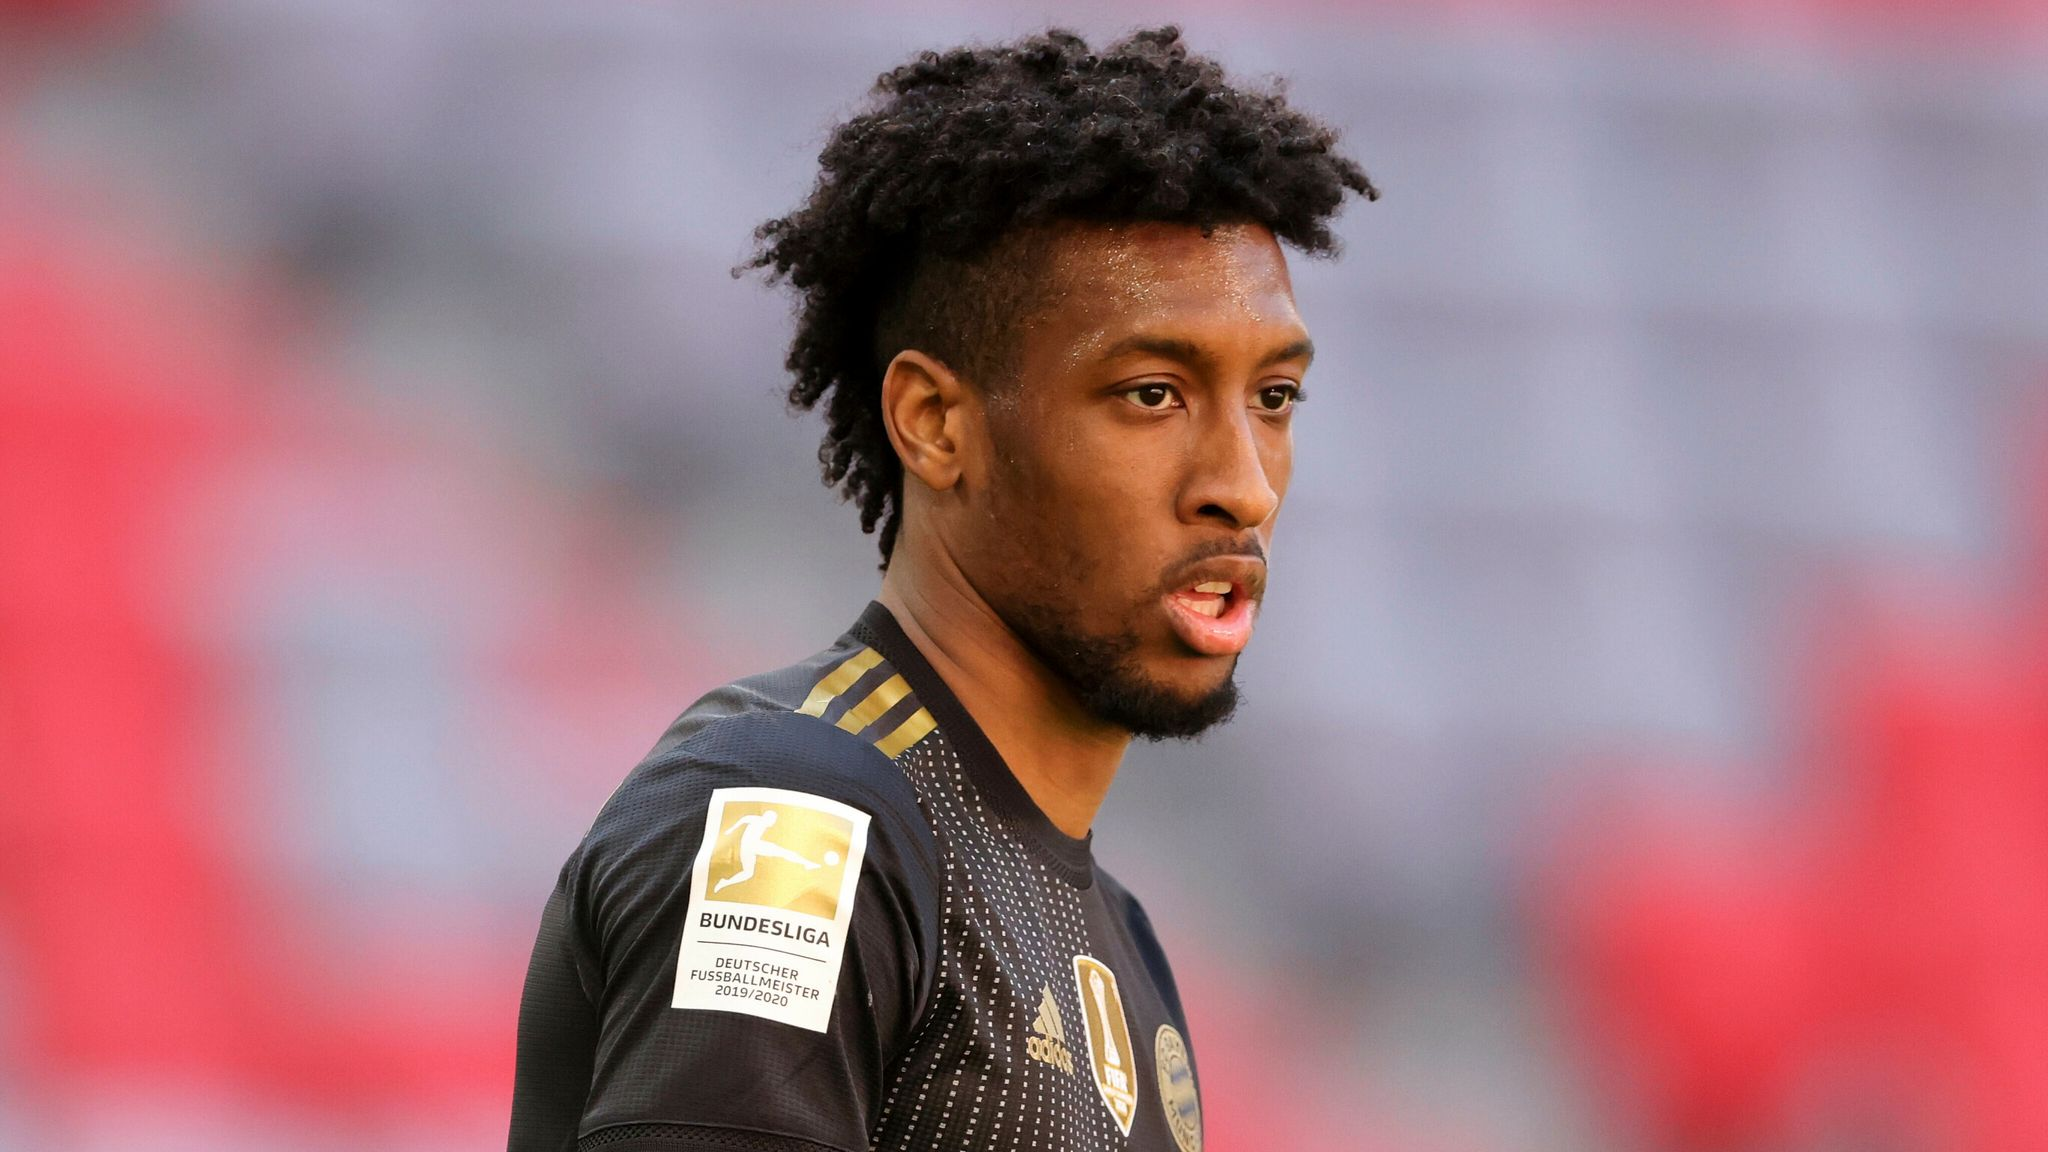 Kingsley Coman: Bayern Munich winger eyes Premier League move after  rejecting new contract offer | Football News | Sky Sports